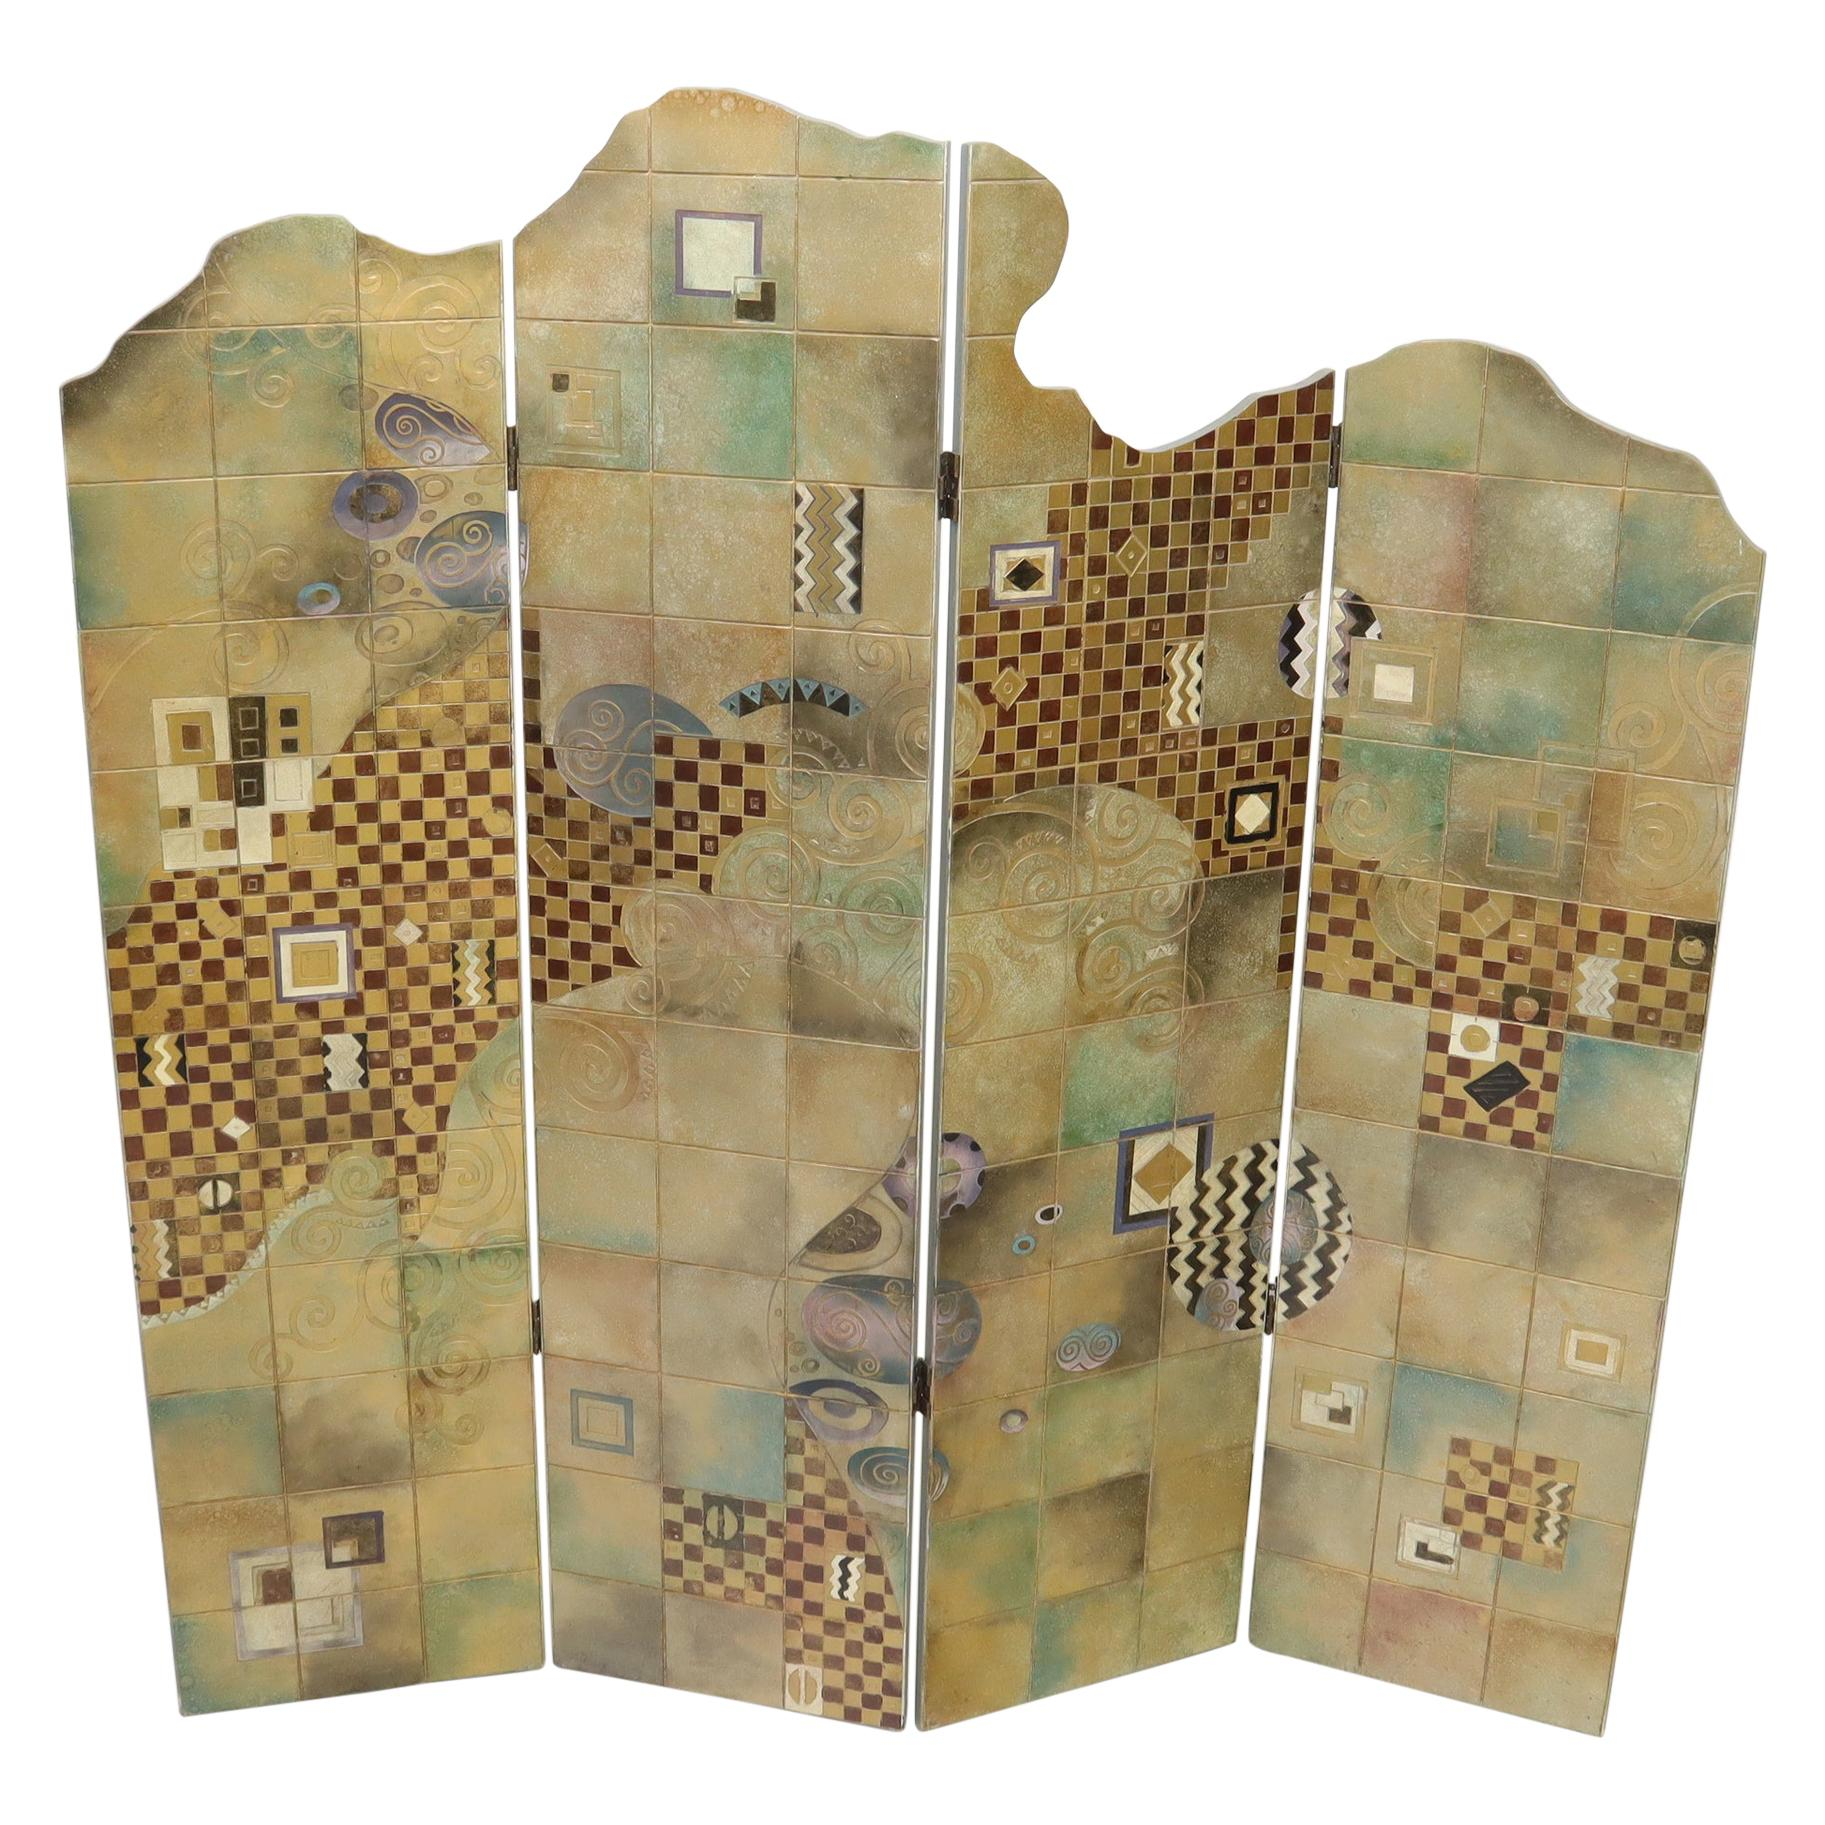 Studio Made Art Decorated Lacquered 4-Panel Room Divider Screen